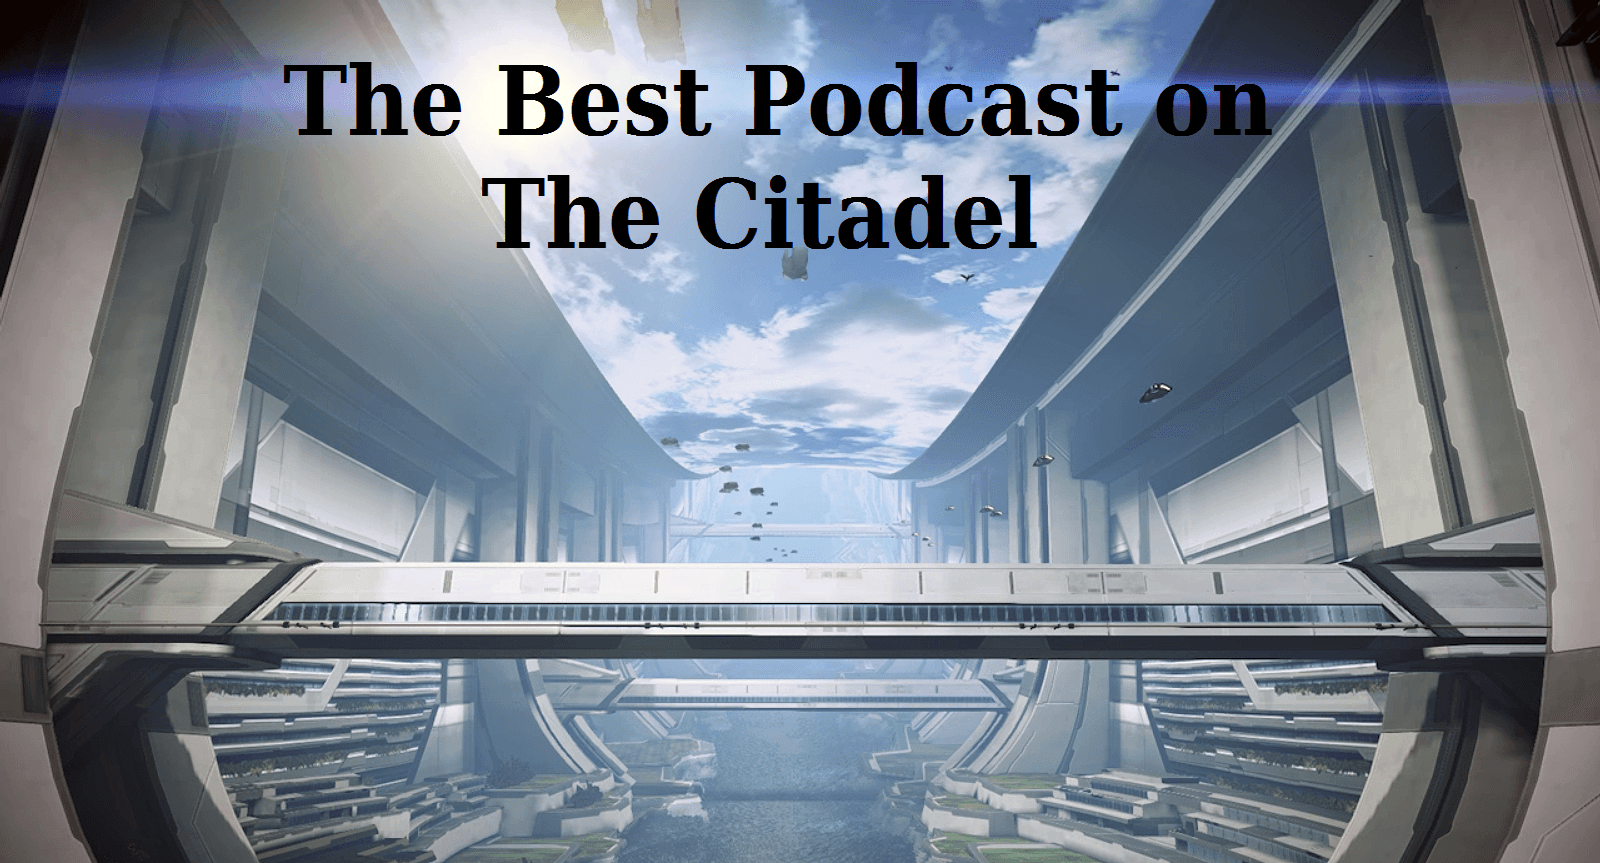 The Best Podcast on the Citadel, Episode 20